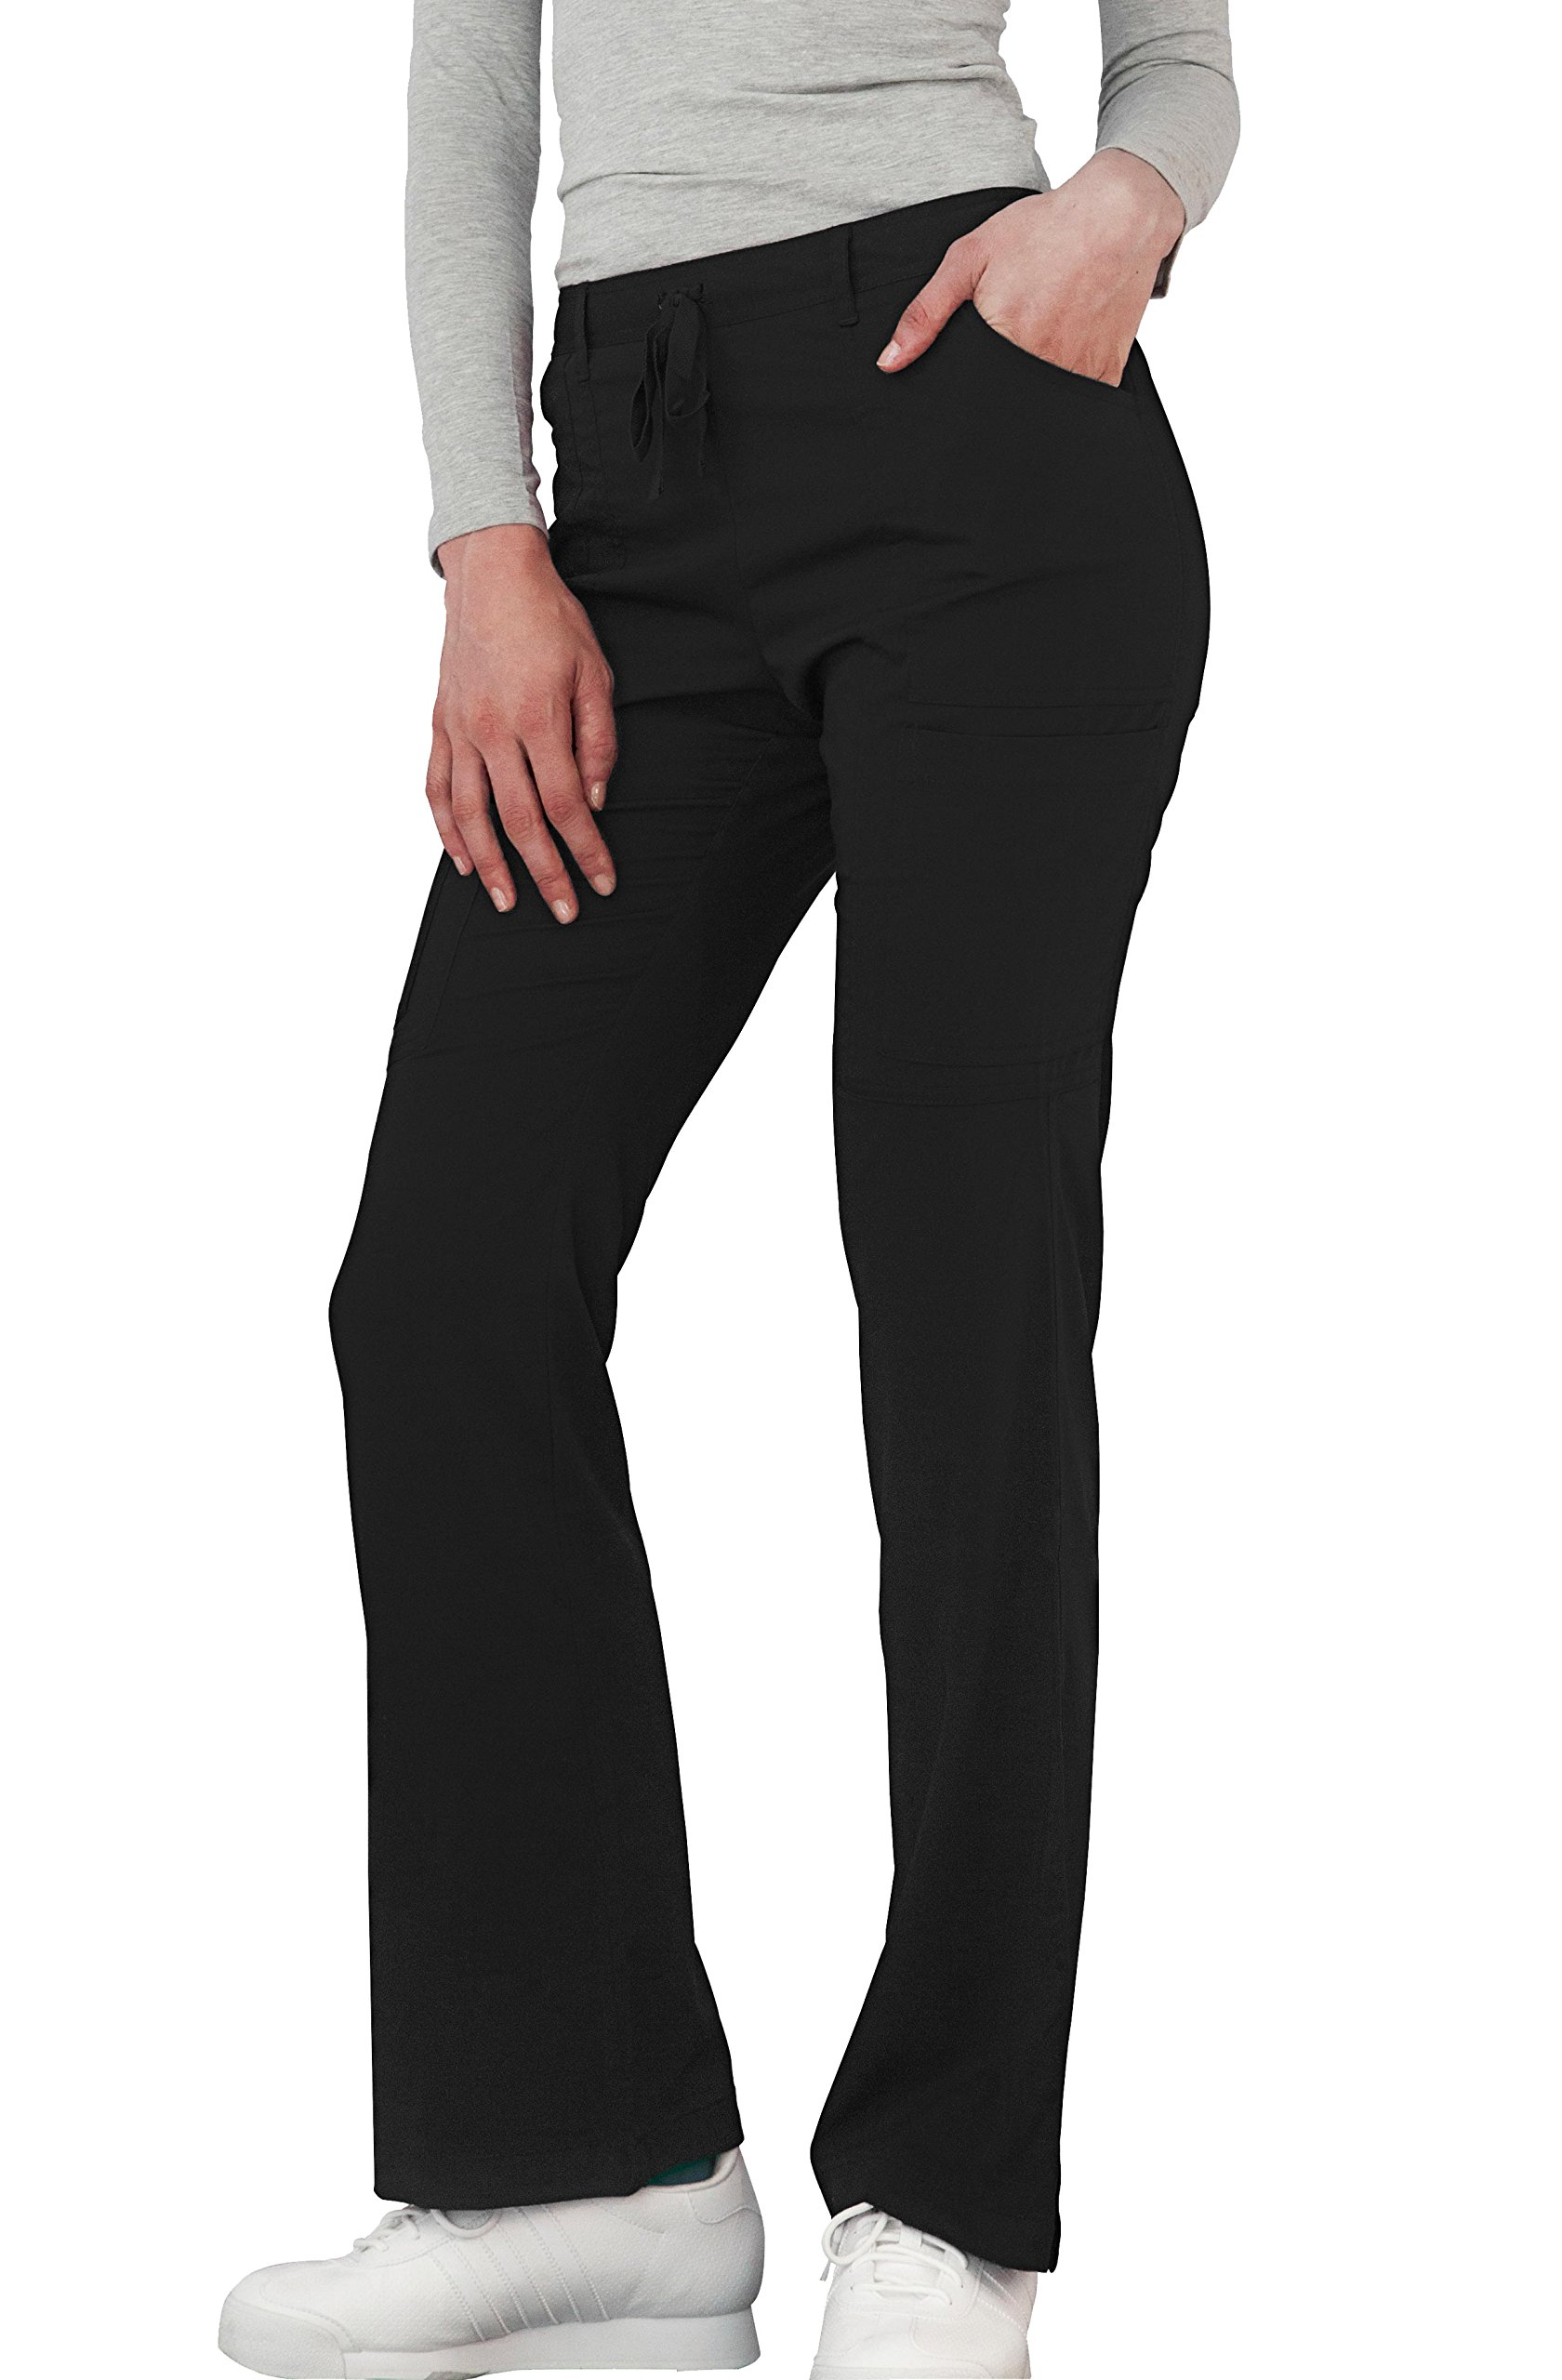 Adar Indulgenc Jr. Fit Low Rise Boot Cut Patch Pocket Pants - 4104 - Black - XS